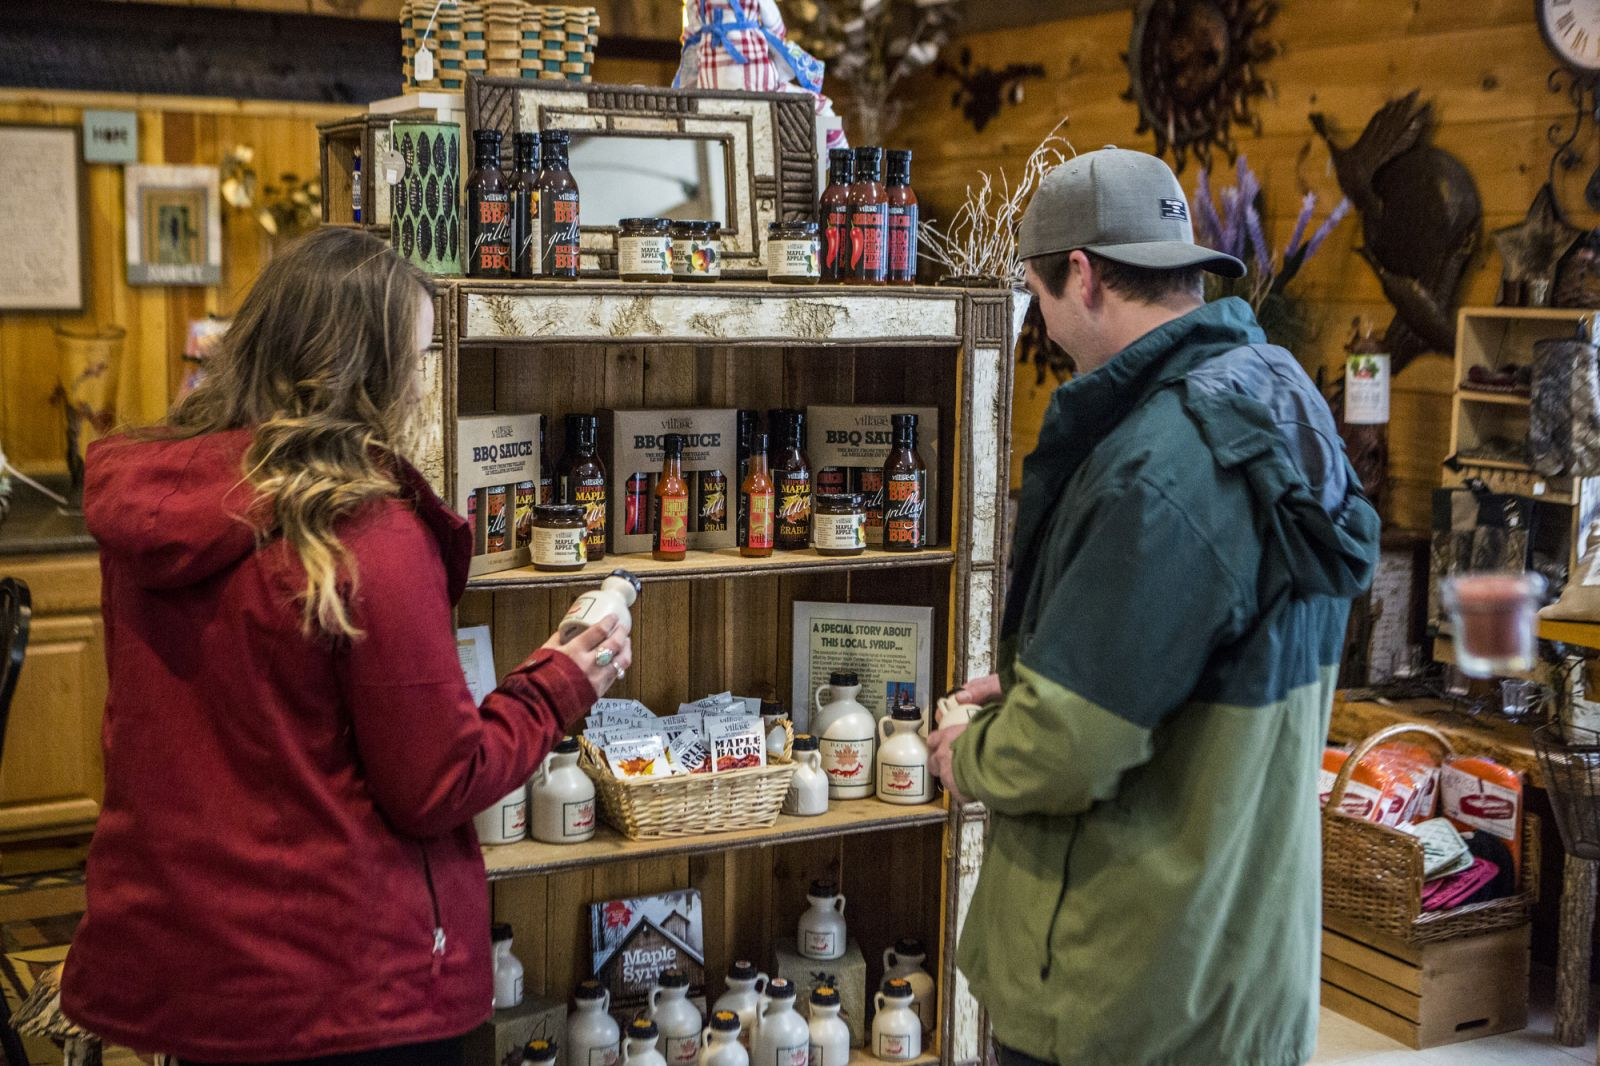 Local goodies like real maple syrup can surprise someone who never had a real Adirondack flapjack breakfast.